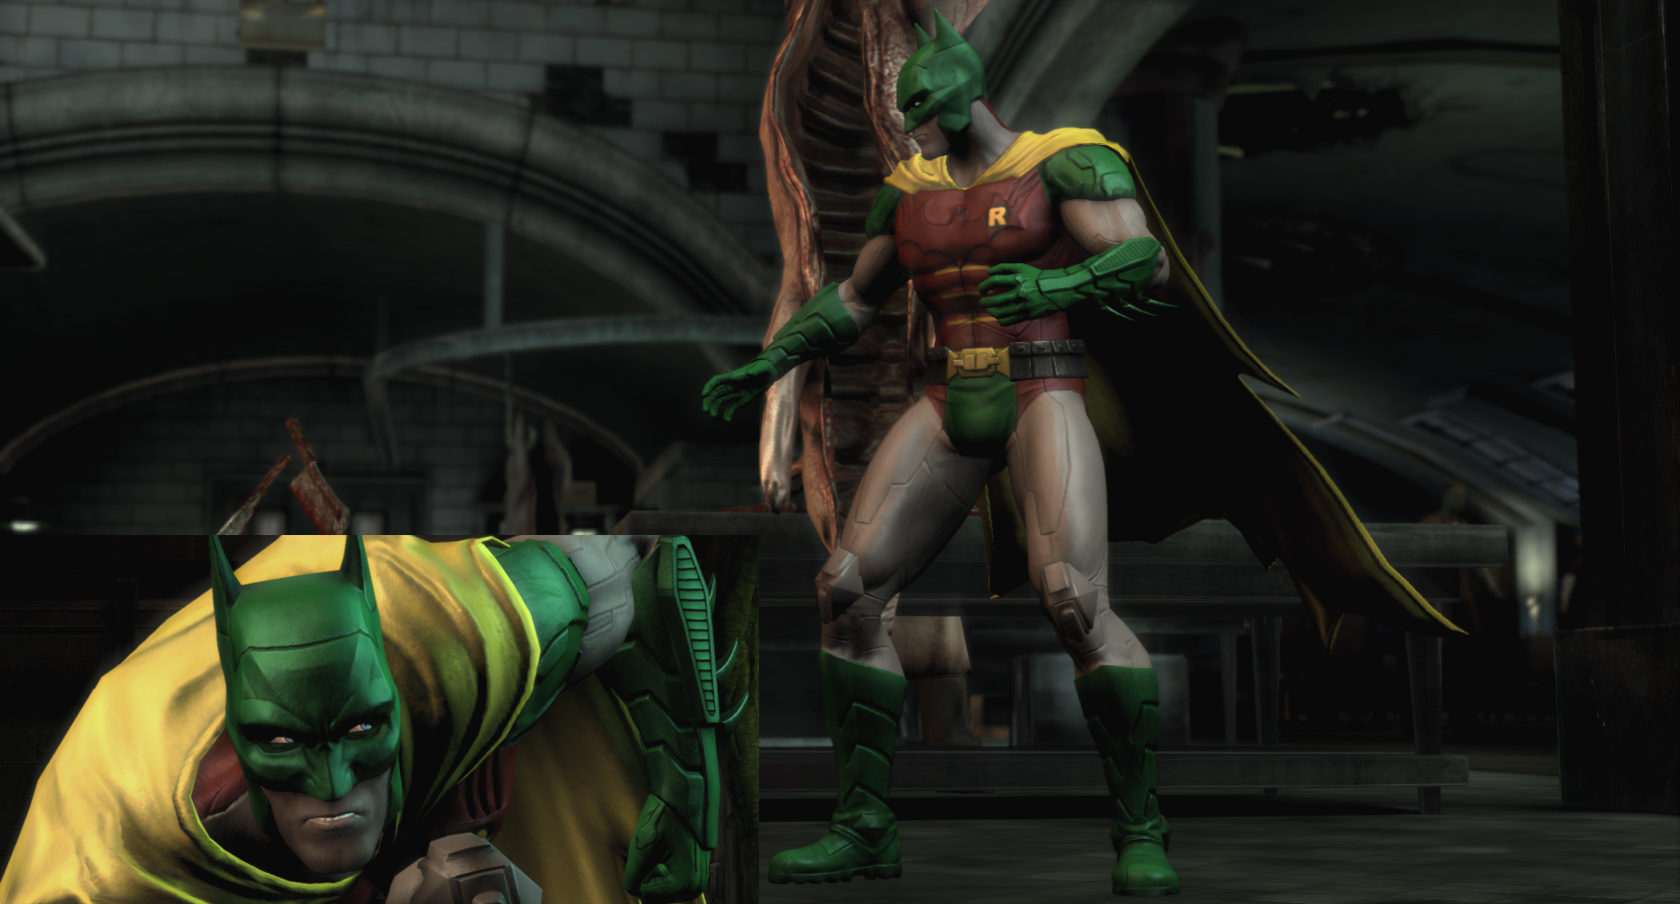 Nude mode injustice hentai tube